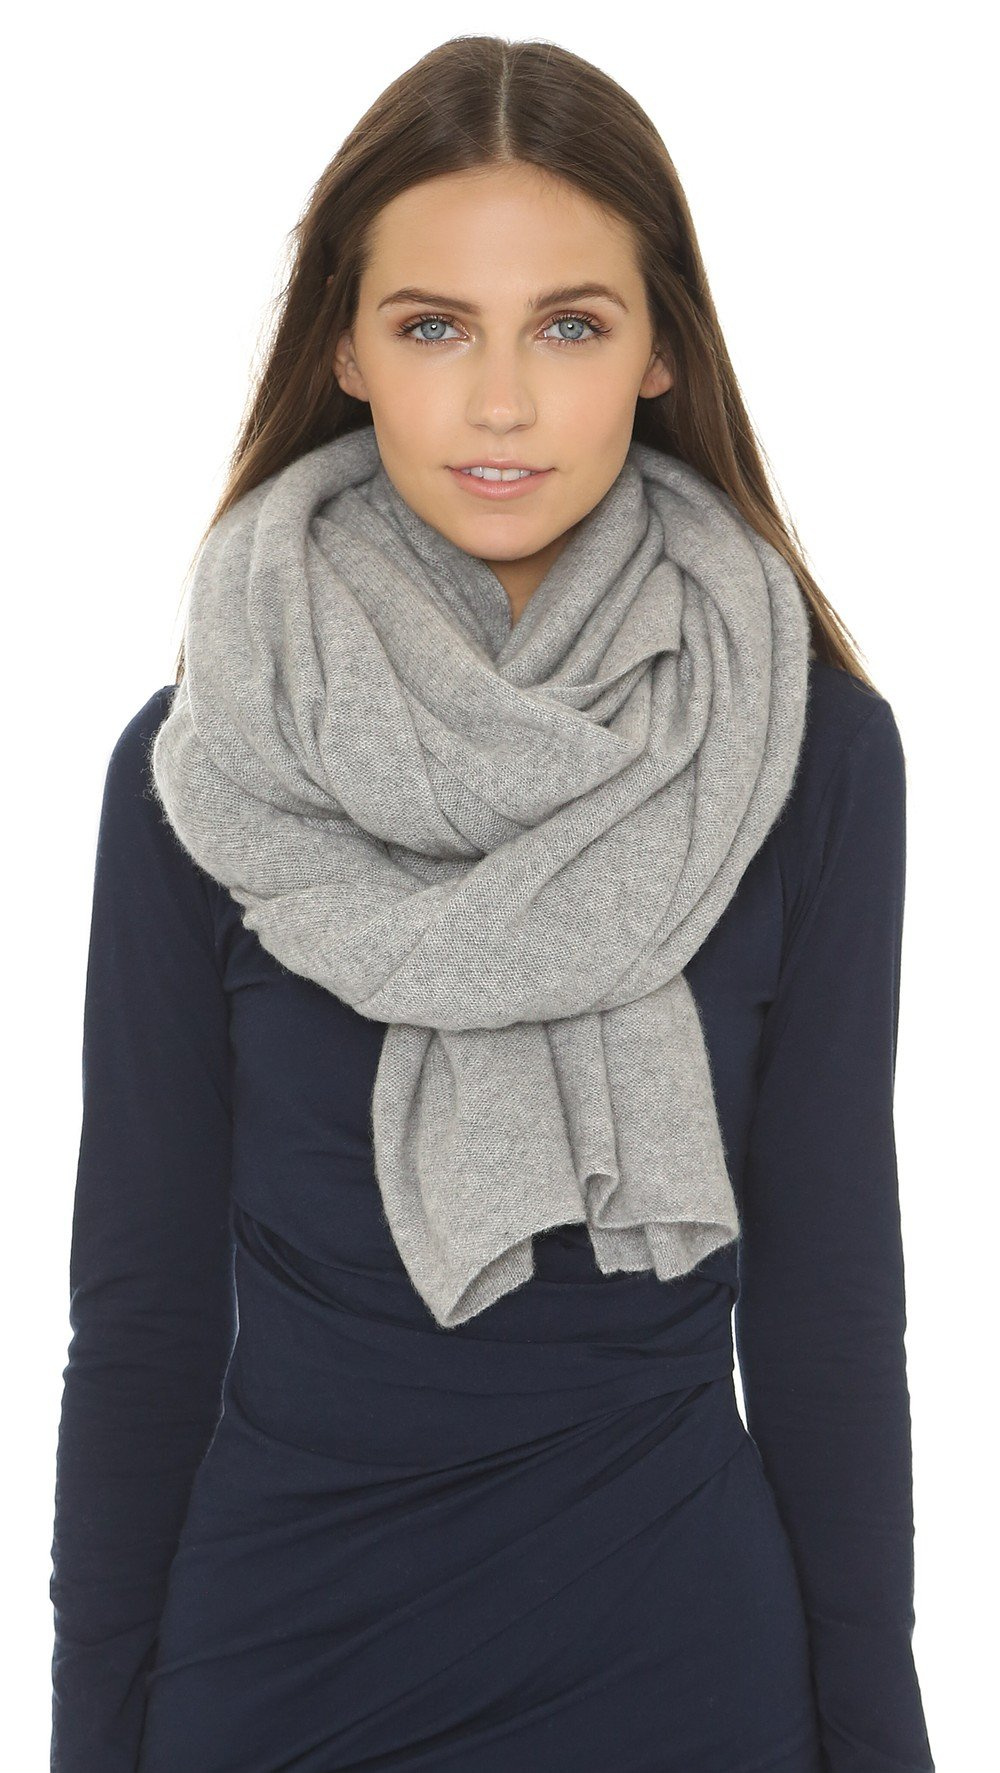 White + Warren Women's Cashmere Travel Wrap Scarf, Grey Heather, One Size by White + Warren